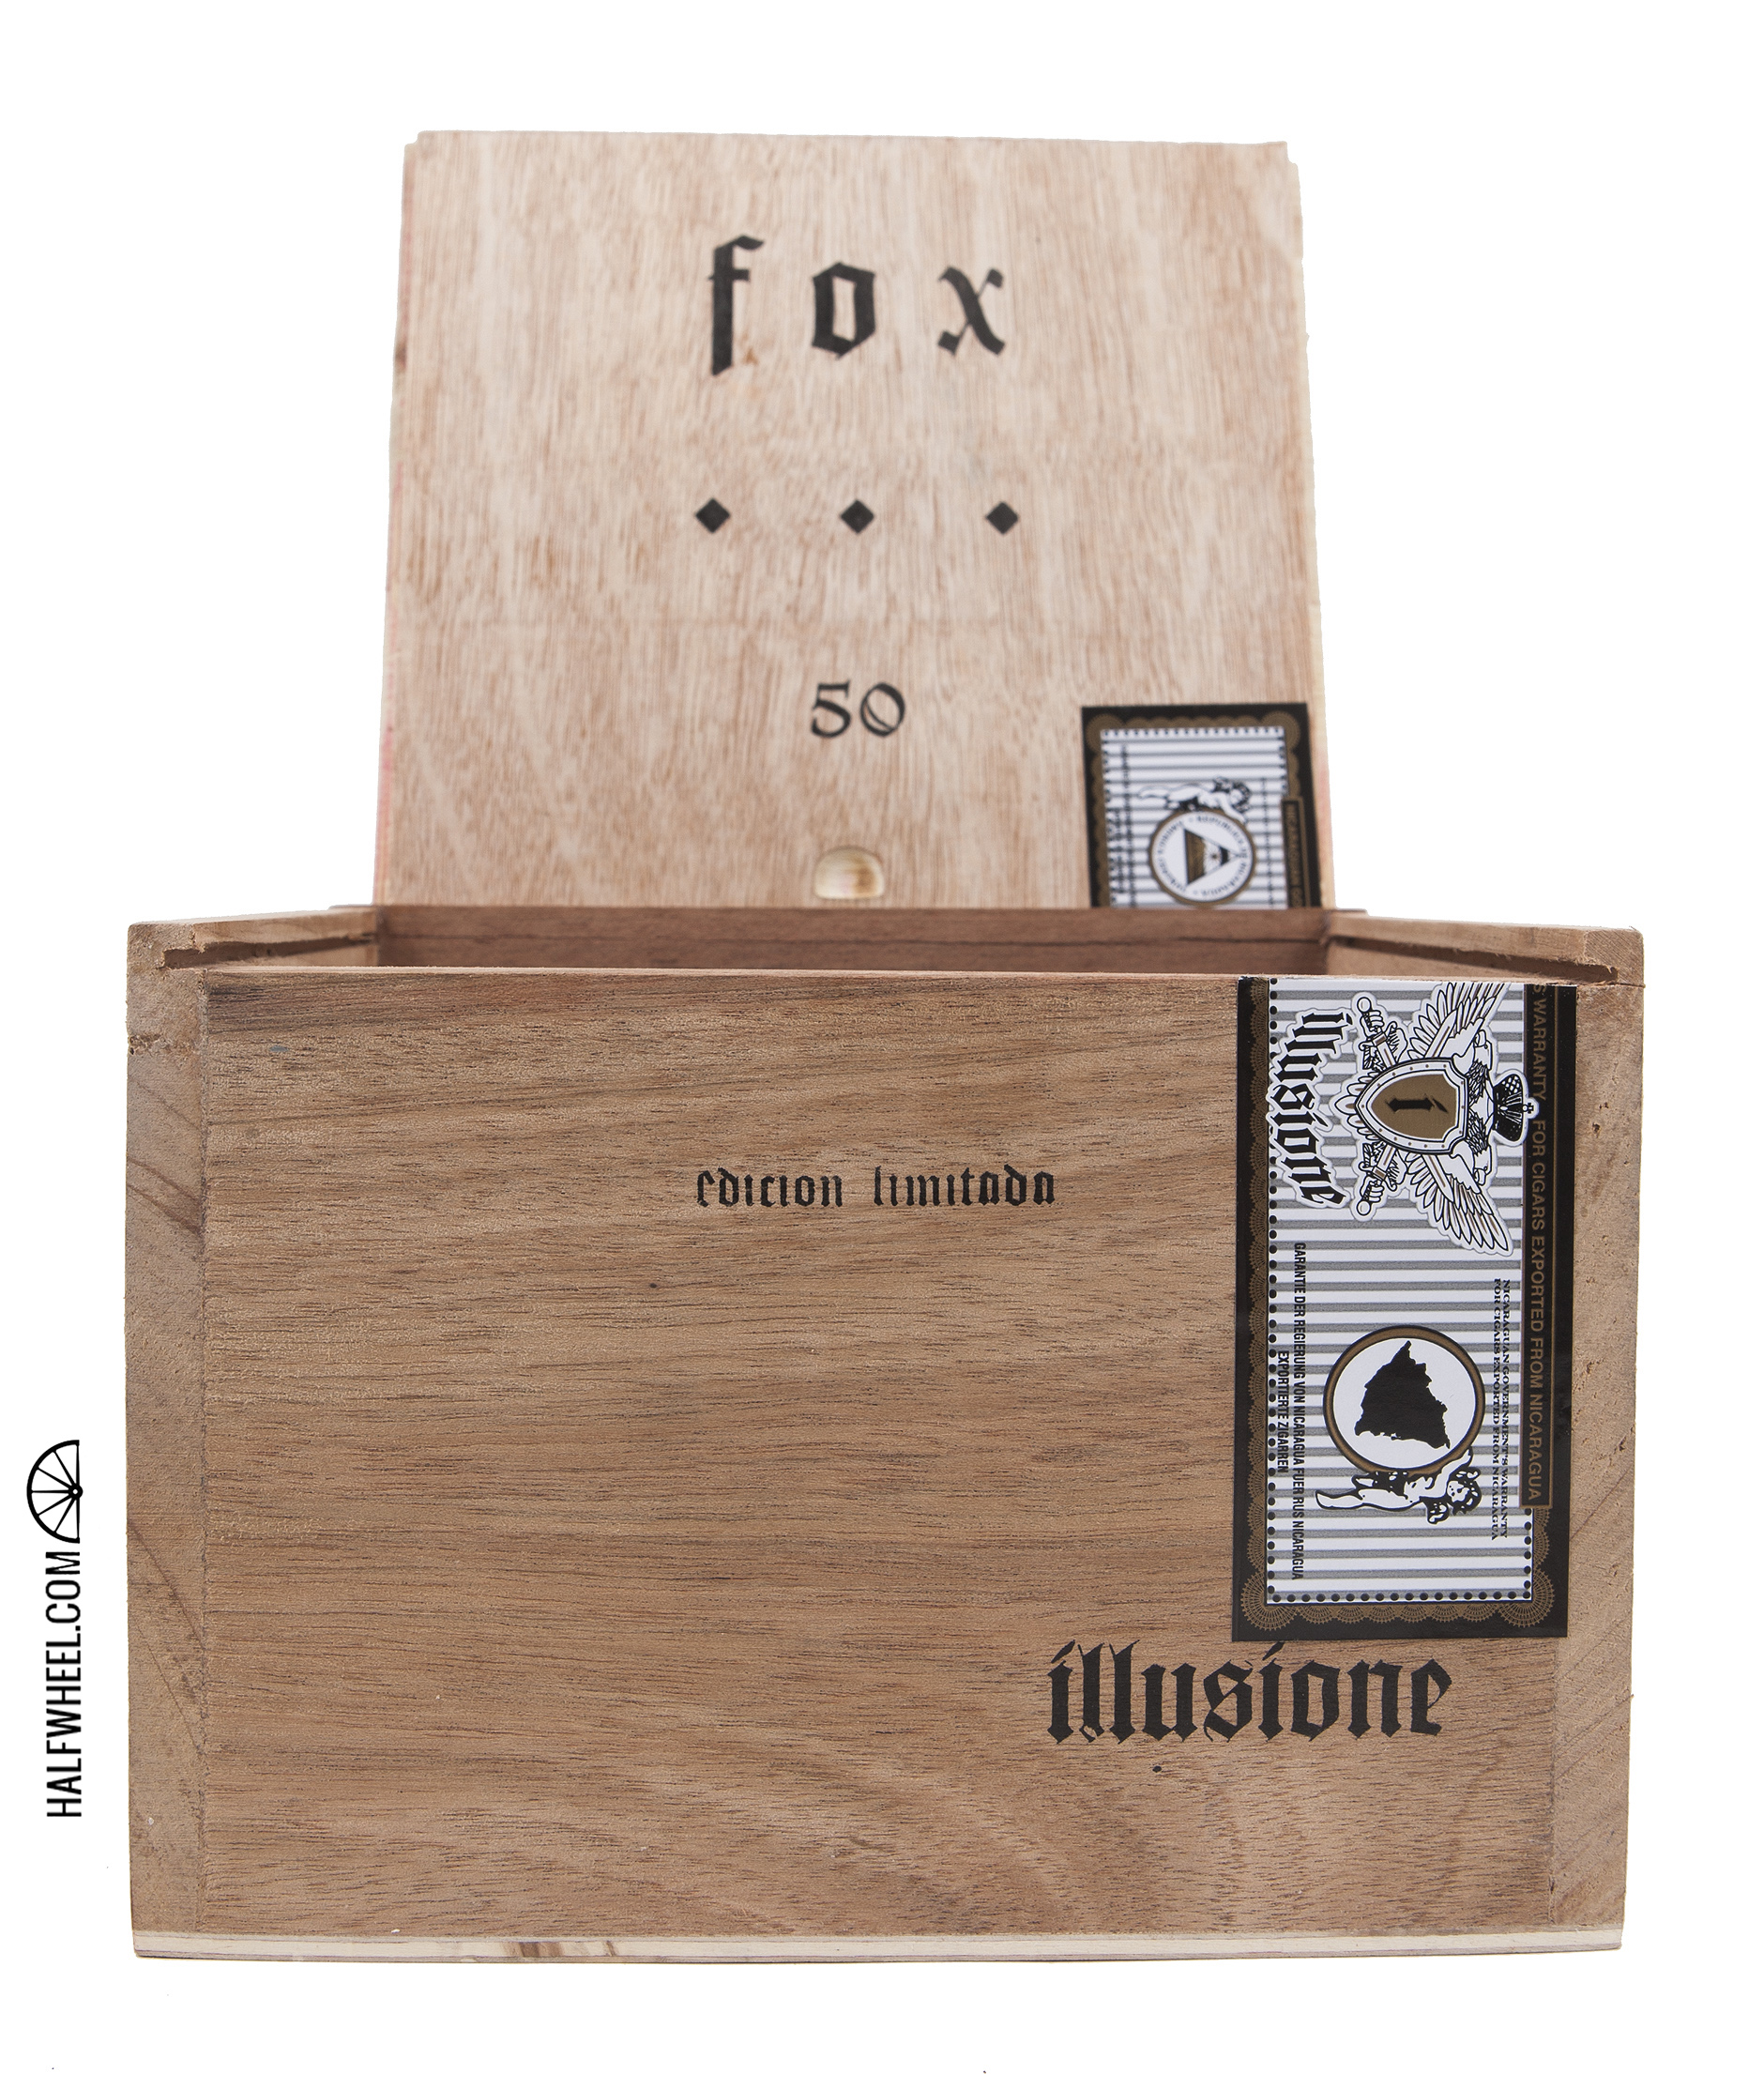 Illusione Sin Cinta Box 2